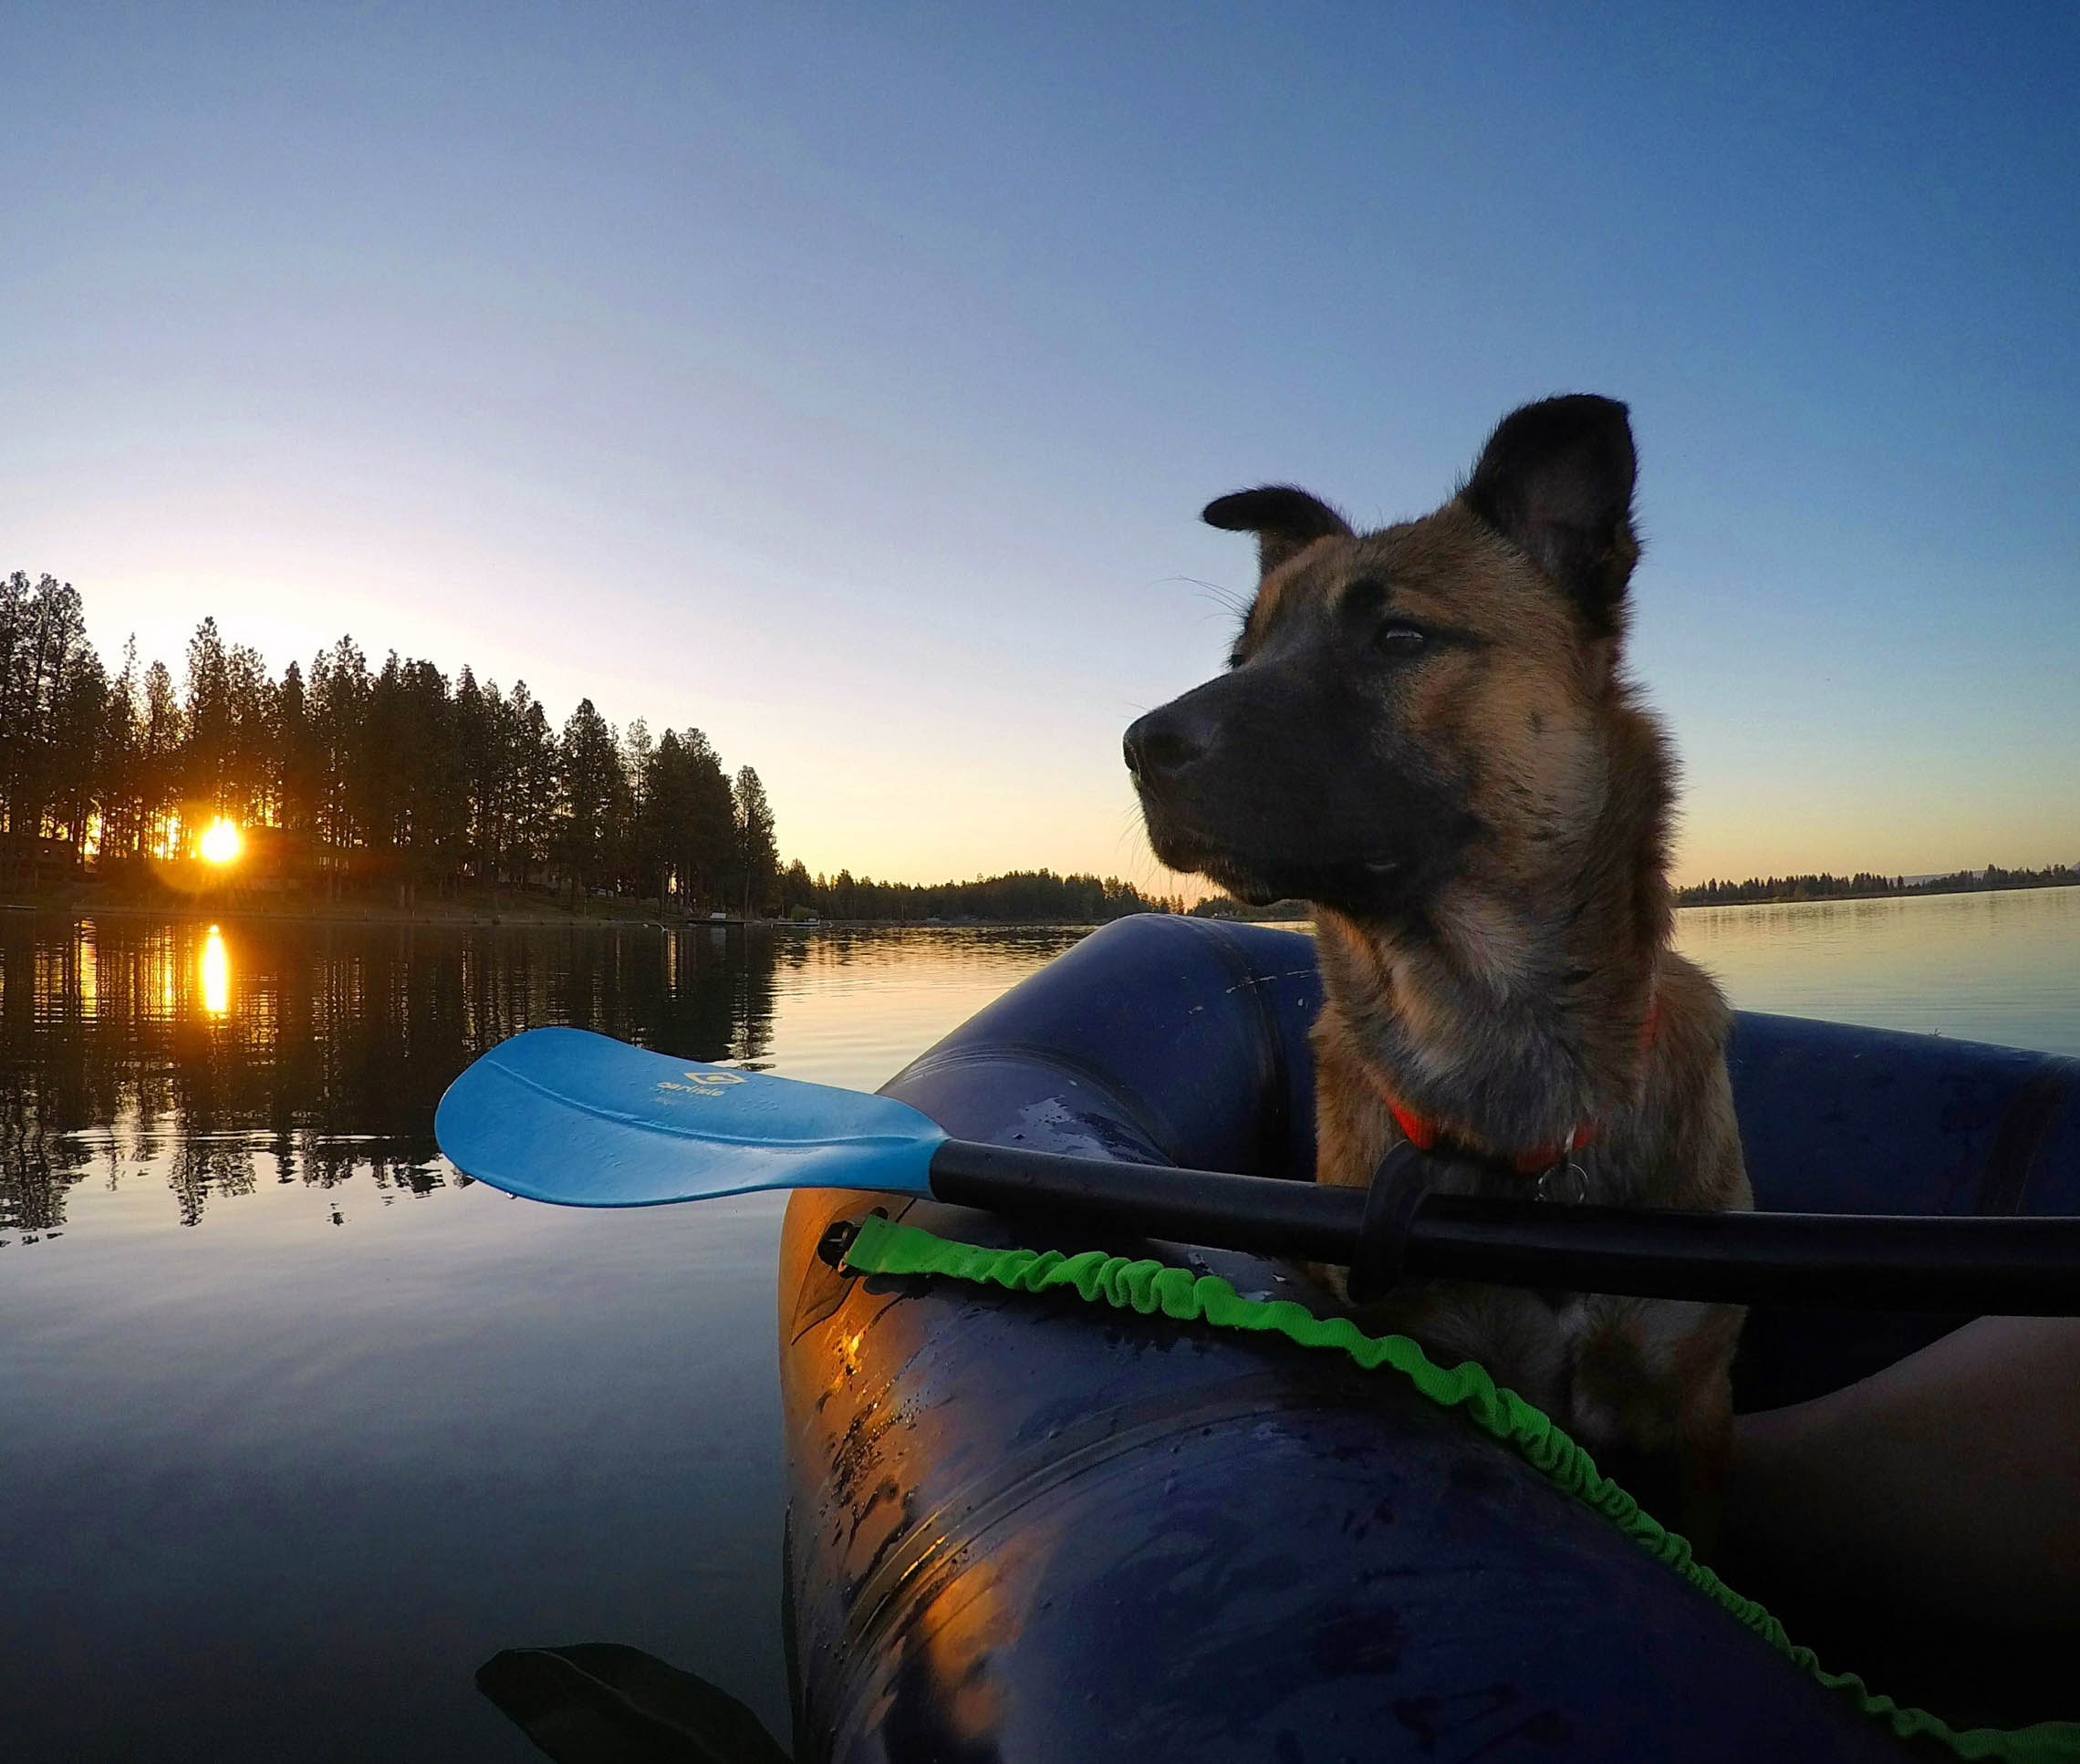 Dog in a packraft at sunset.